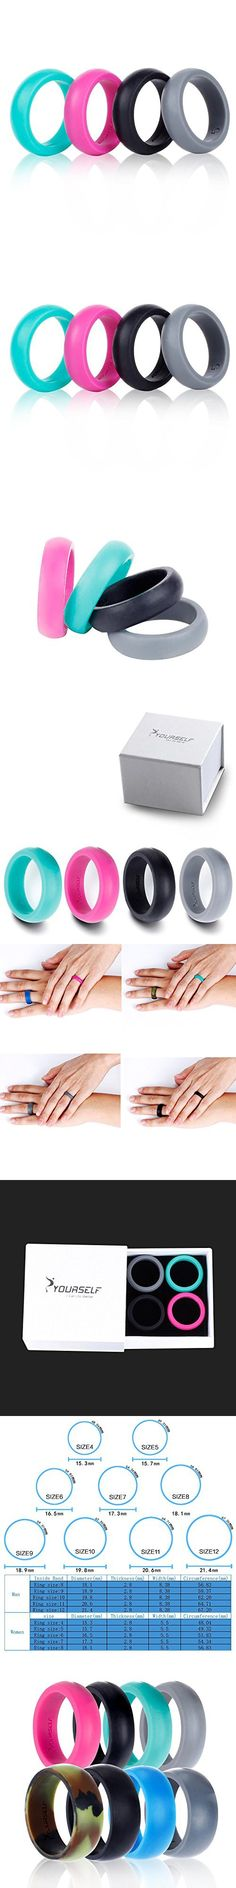 Silicone Wedding Ring Band-4 Pack-Safe Flexible Comfortable Medical Grade Love Rings Set for Men Women- Fit for Sports & Outdoors, Workout, Fitness, Athletes, Engineers+ Gift Box-Syourself (Women 7)